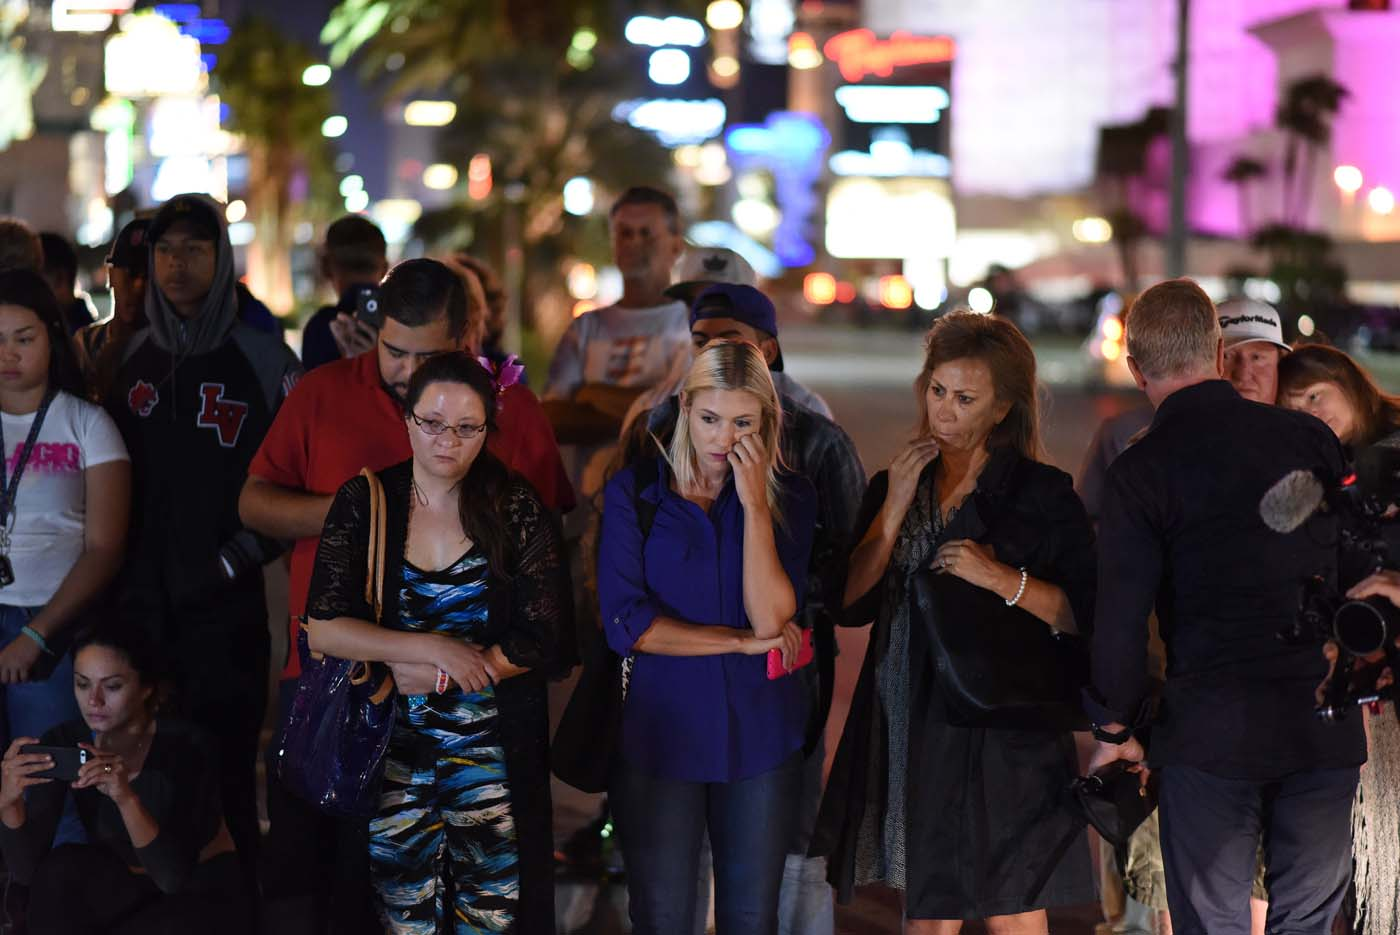 Mourners look on at a makeshift memorial near the Mandalay Hotel on the Las Vegas Strip, in Las Vegas, Nevada on October 3, 2017, after a gunman killed 58 people and wounded more than 500 others, before taking his own life, when he opened fire from a hotel on a country music festival. Police said the gunman, a 64-year-old local resident named as Stephen Paddock, had been killed after a SWAT team responded to reports of multiple gunfire from the 32nd floor of the Mandalay Bay, a hotel-casino next to the concert venue. / AFP PHOTO / Robyn Beck